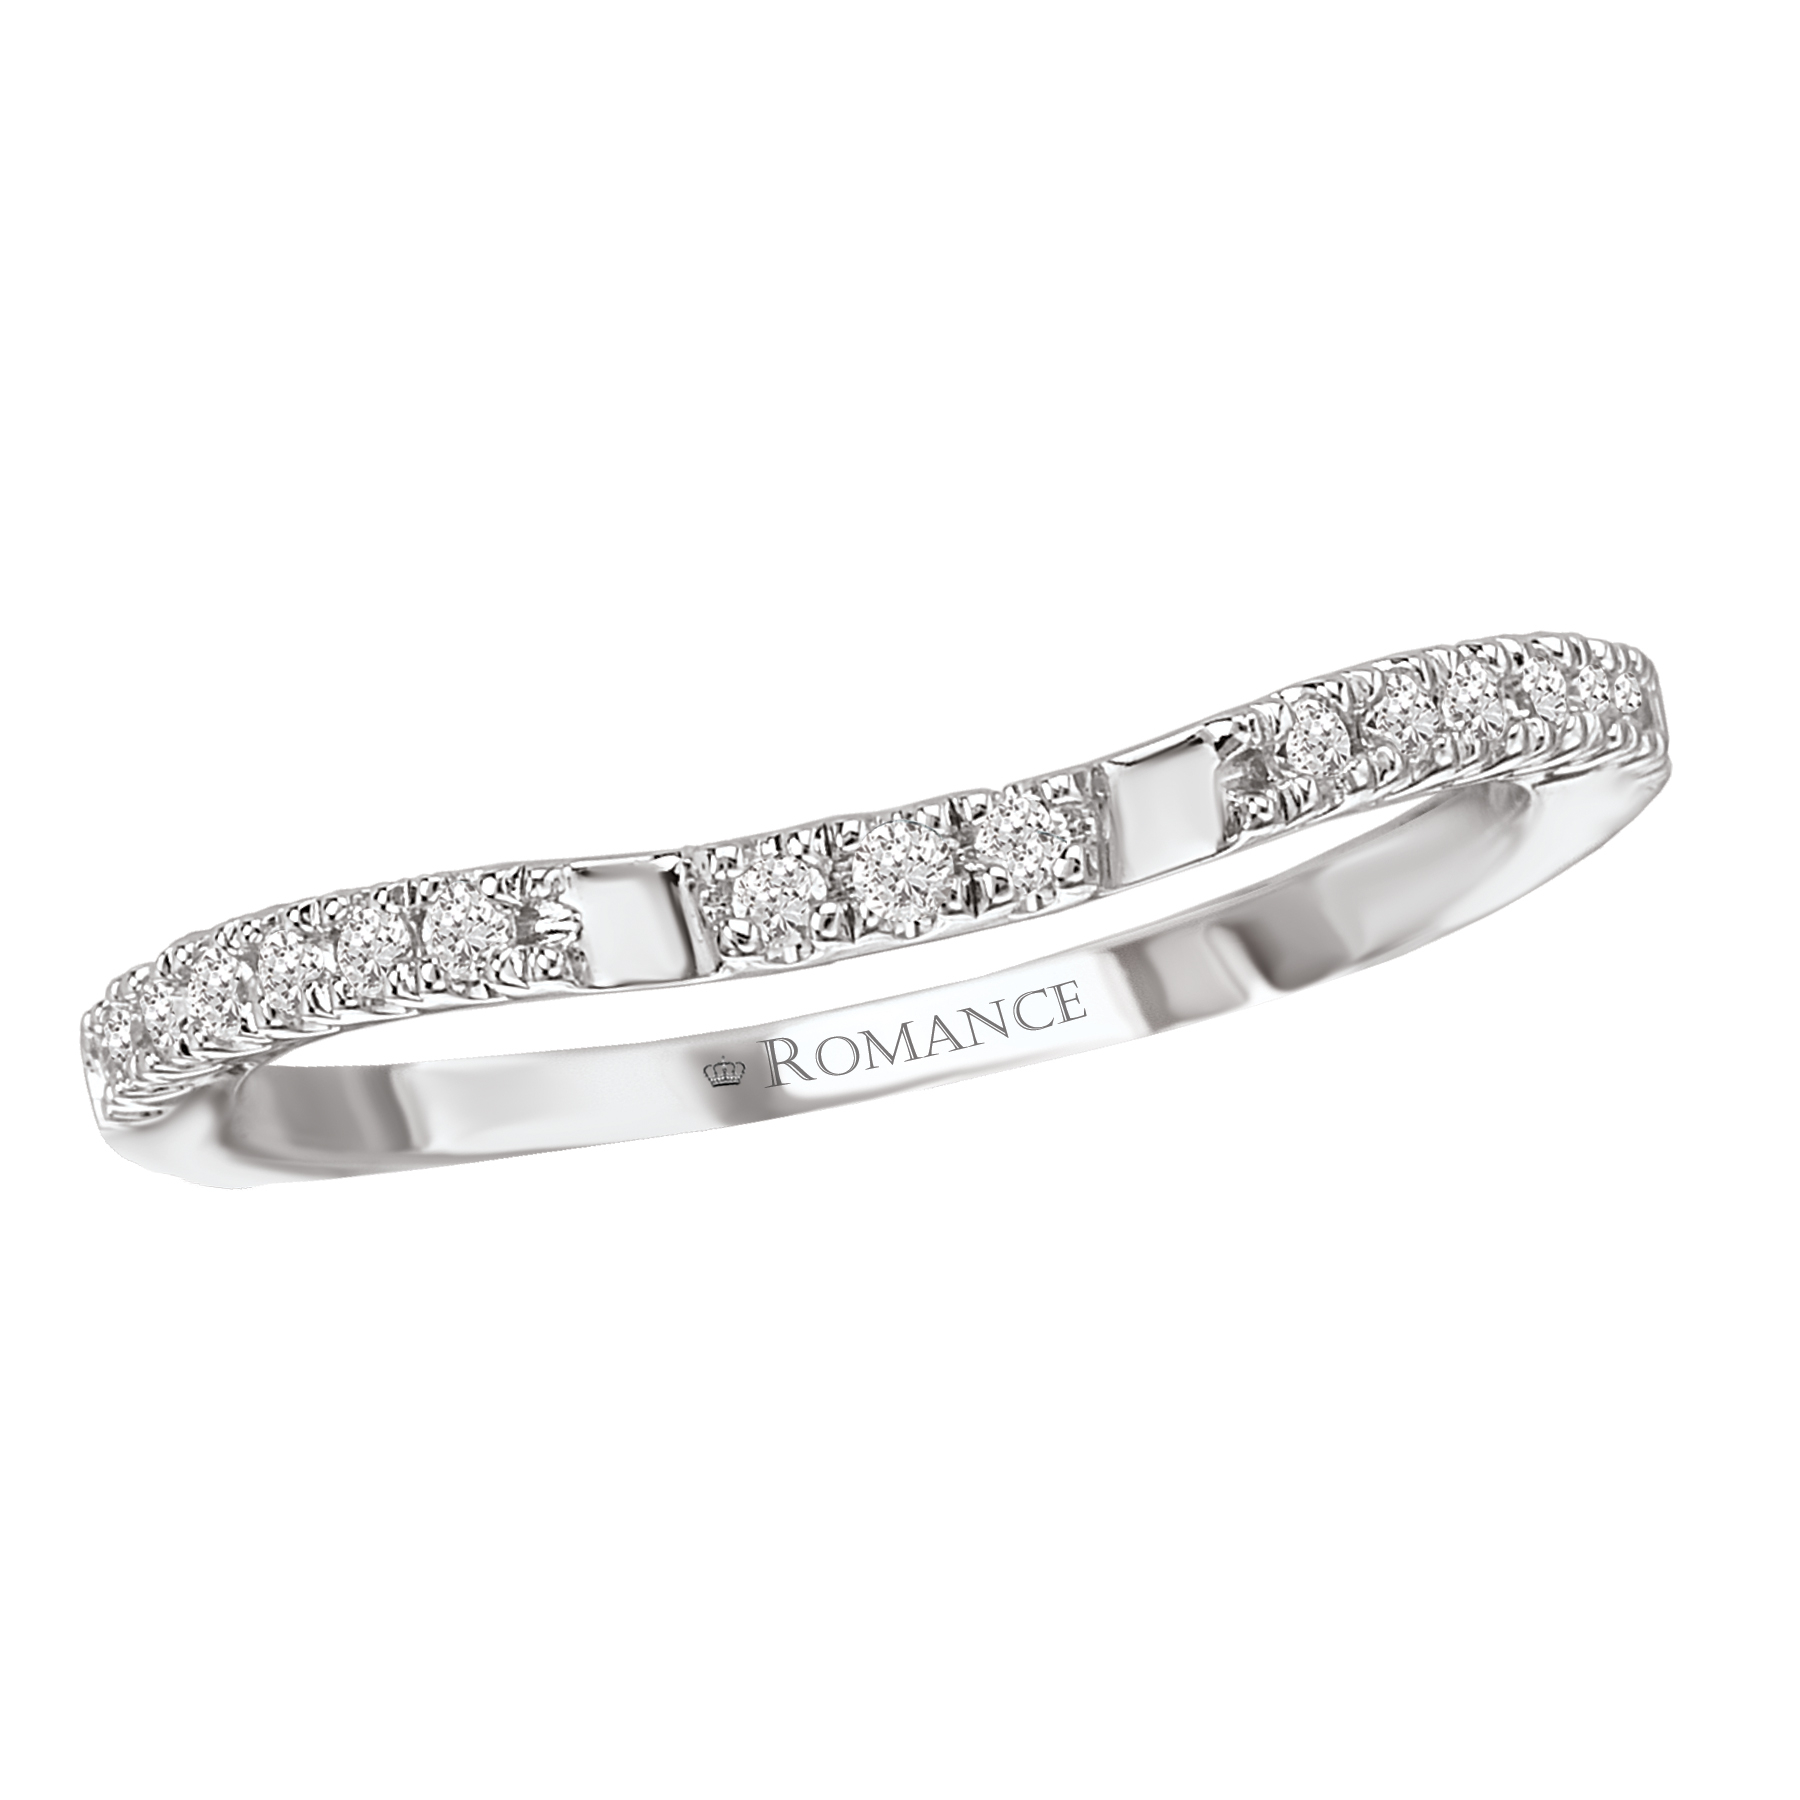 Romance Wedding Bands 117384-W product image